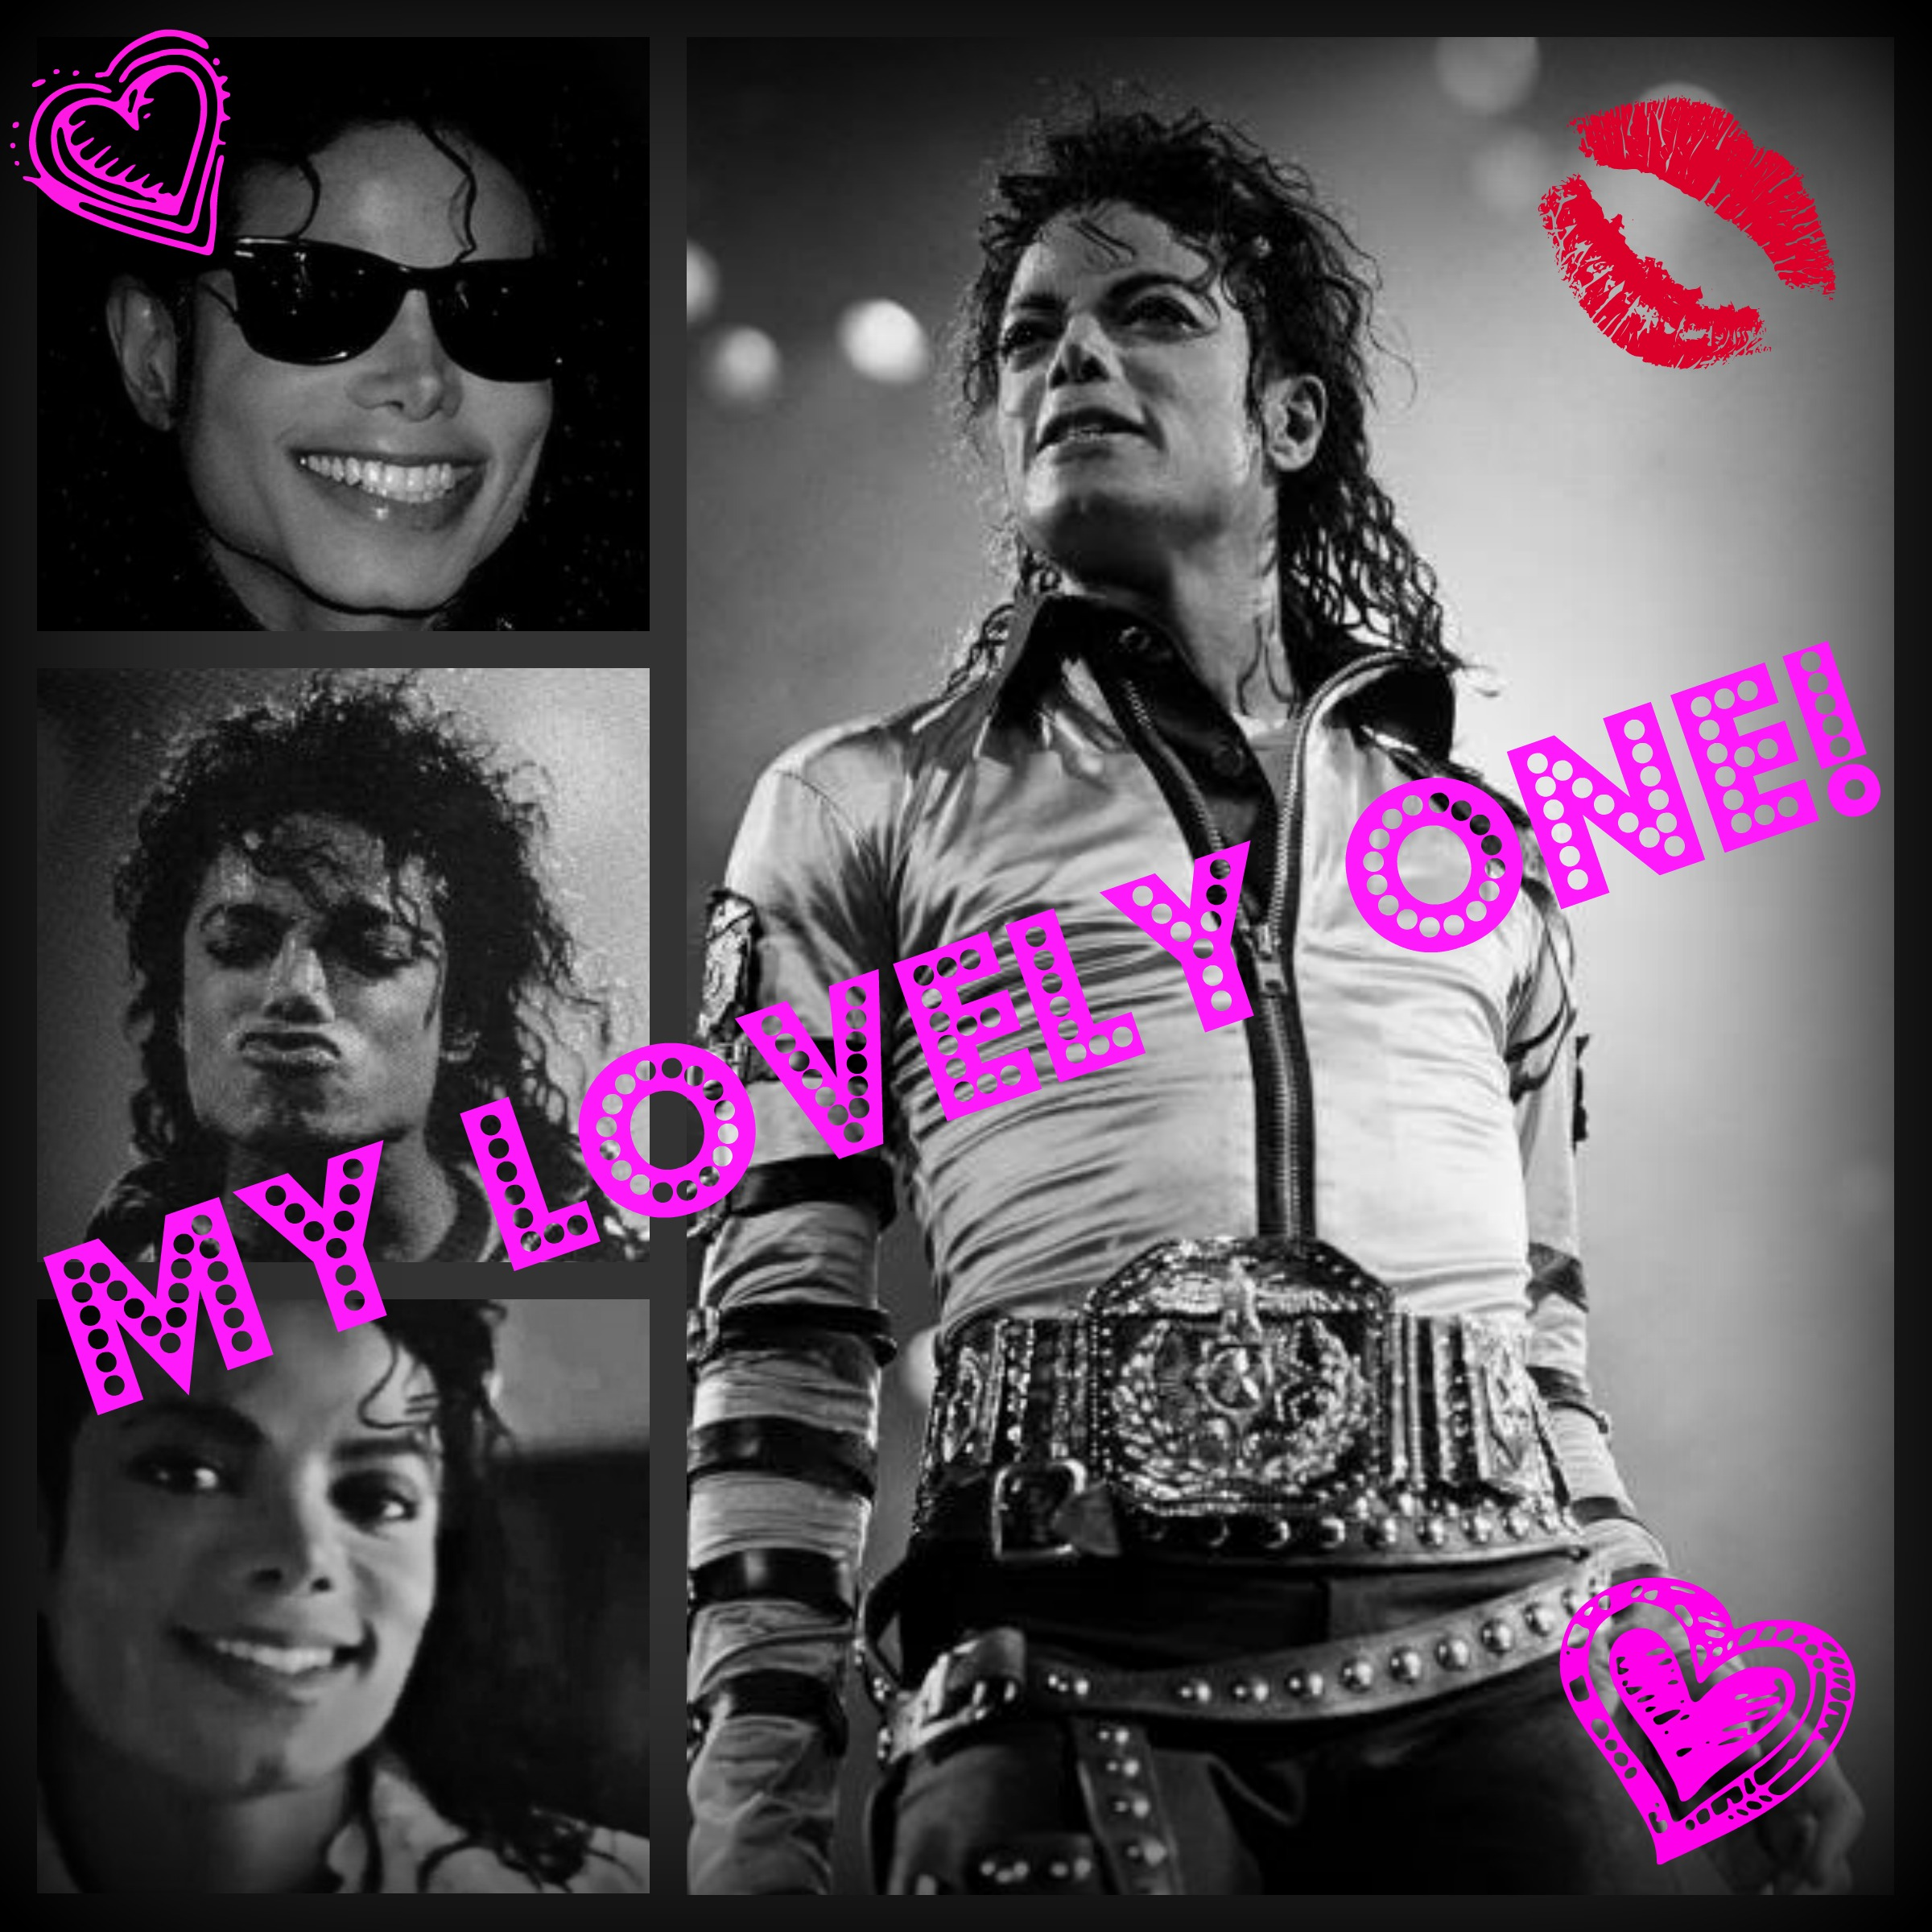 wewe are my lovely one Michael!